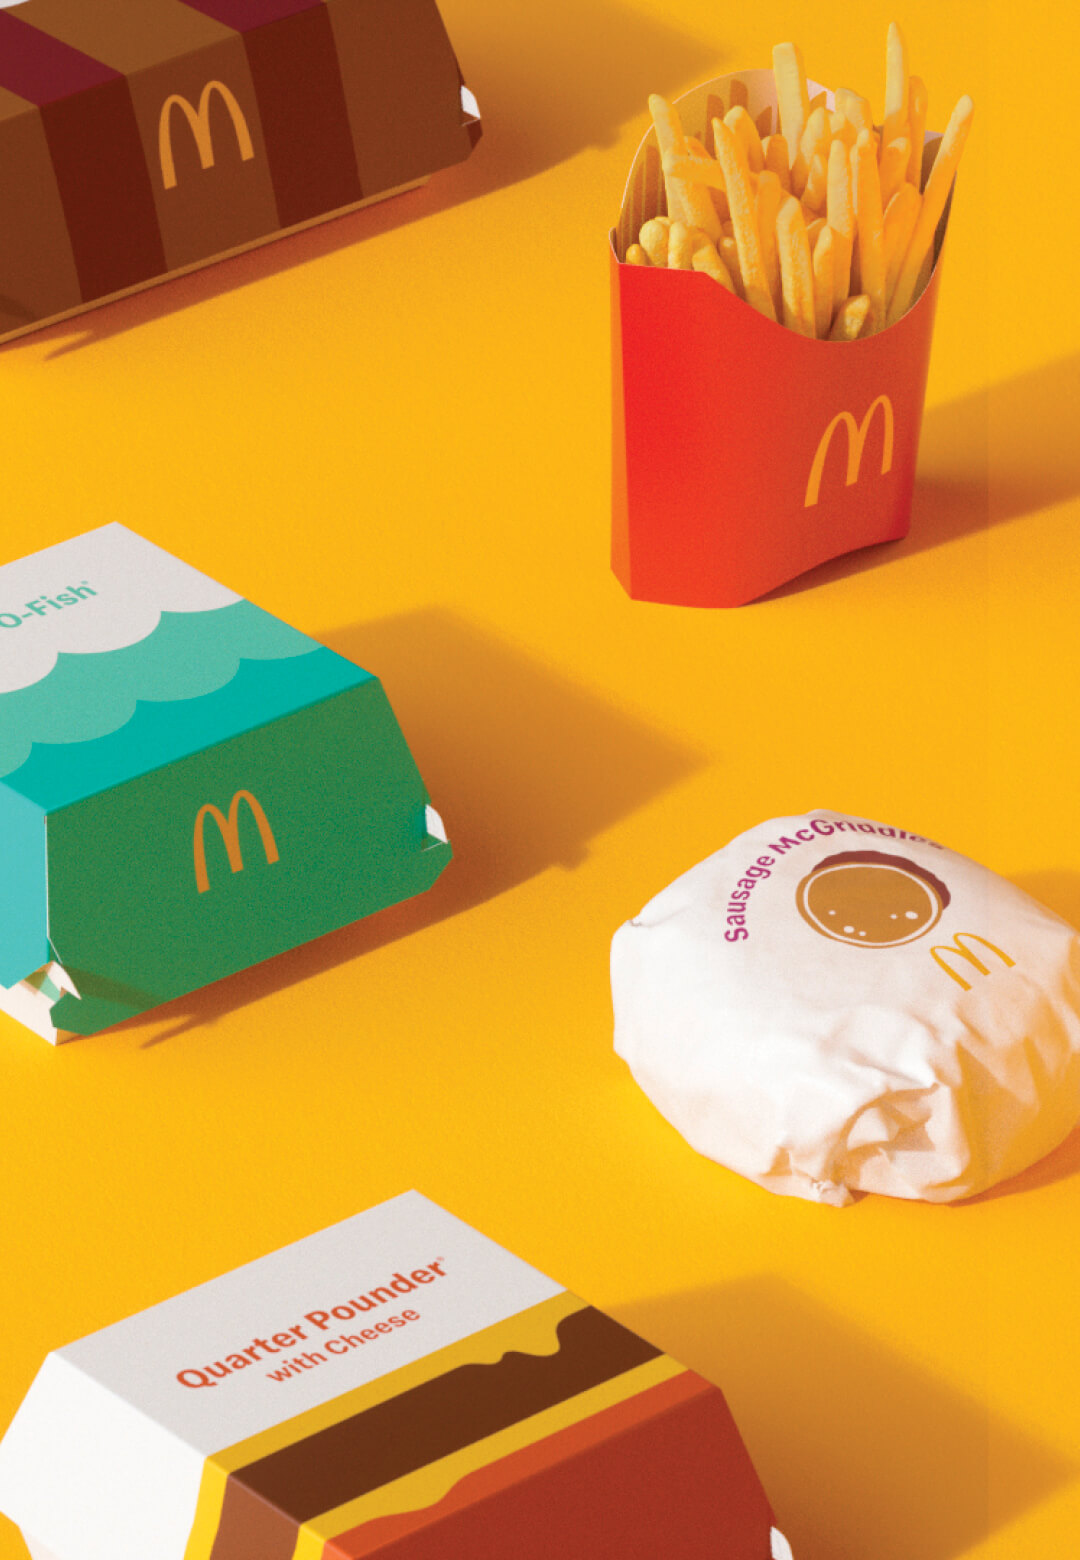 Redesigned packaging for McDonald's by Pearlfisher | McDonald's global packaging redesign by Pearlfisher | STIRworld